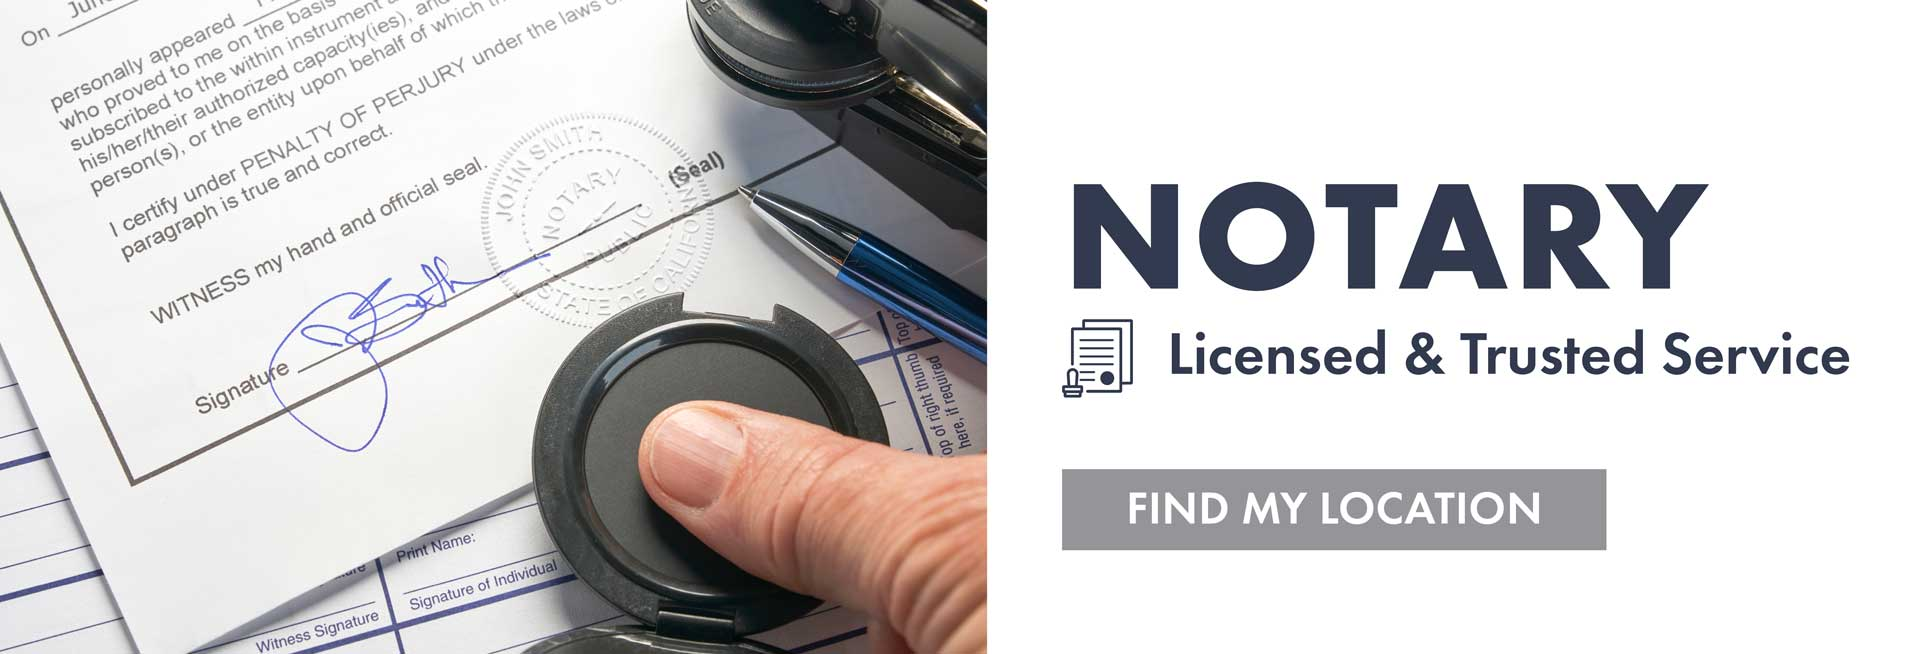 Notary - Licensed and Trusted Service - Find My Location